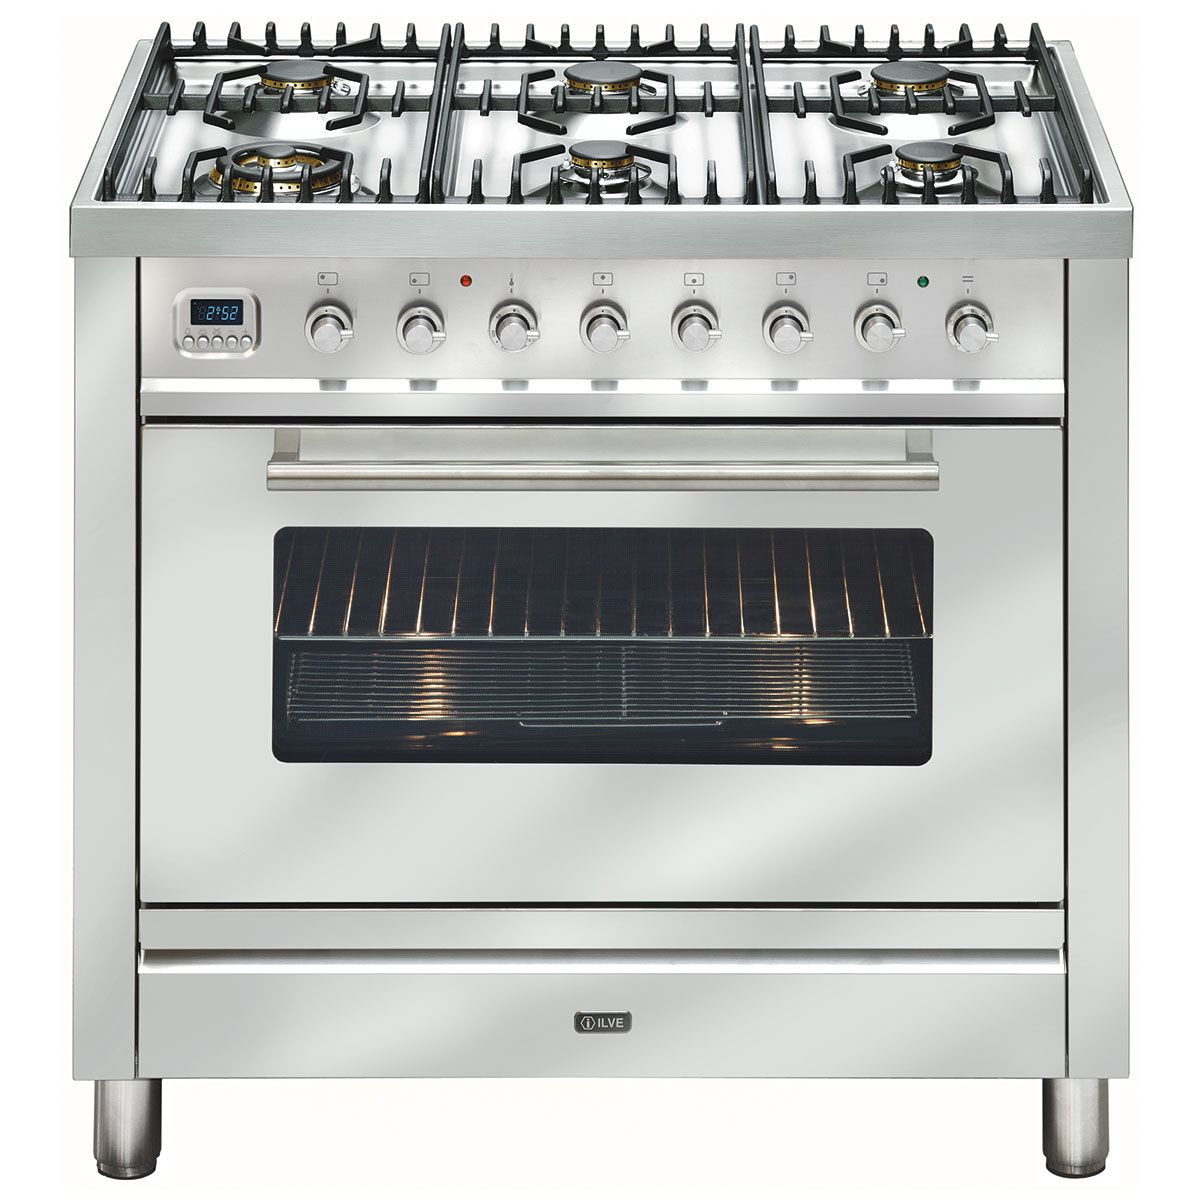 Freestanding Ilve Dual Fuel Oven Stove Nt906wmpss 90cm Cooker With 6 Gas Burners And Electric